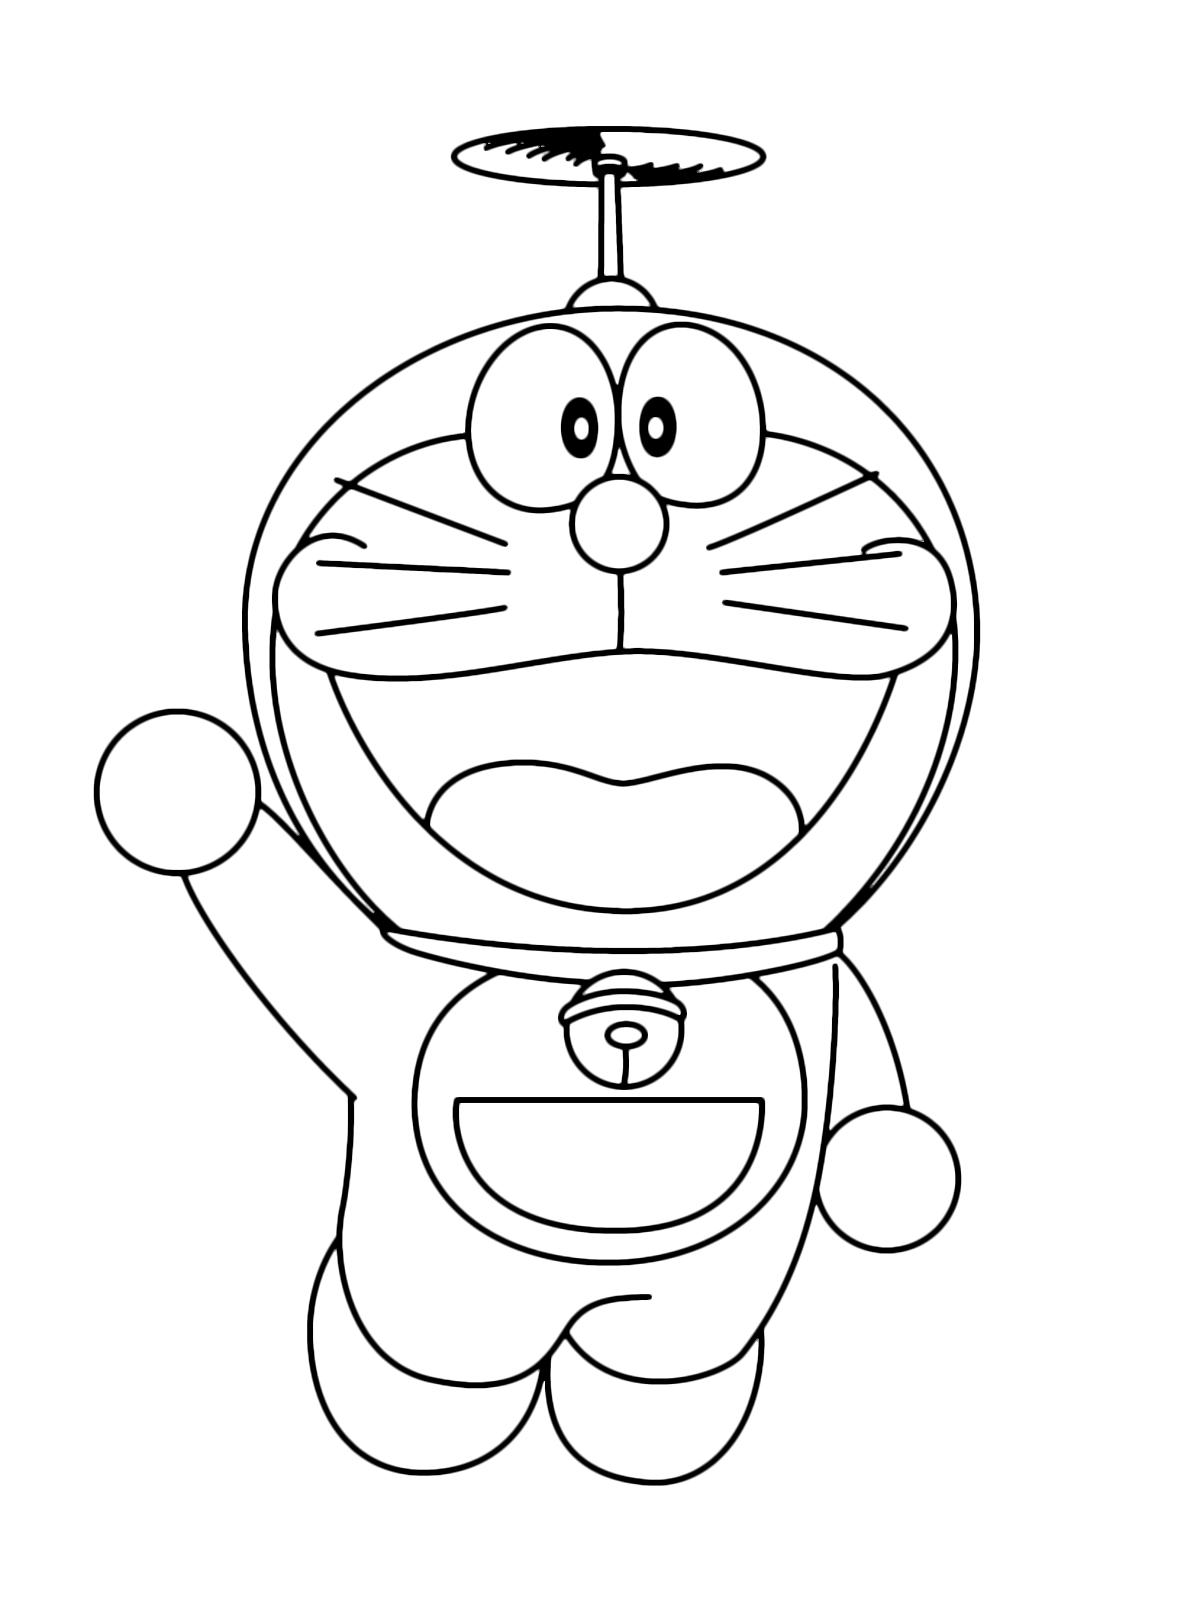 Doraemon - Doraemon while flying with the bamboo-copter greets